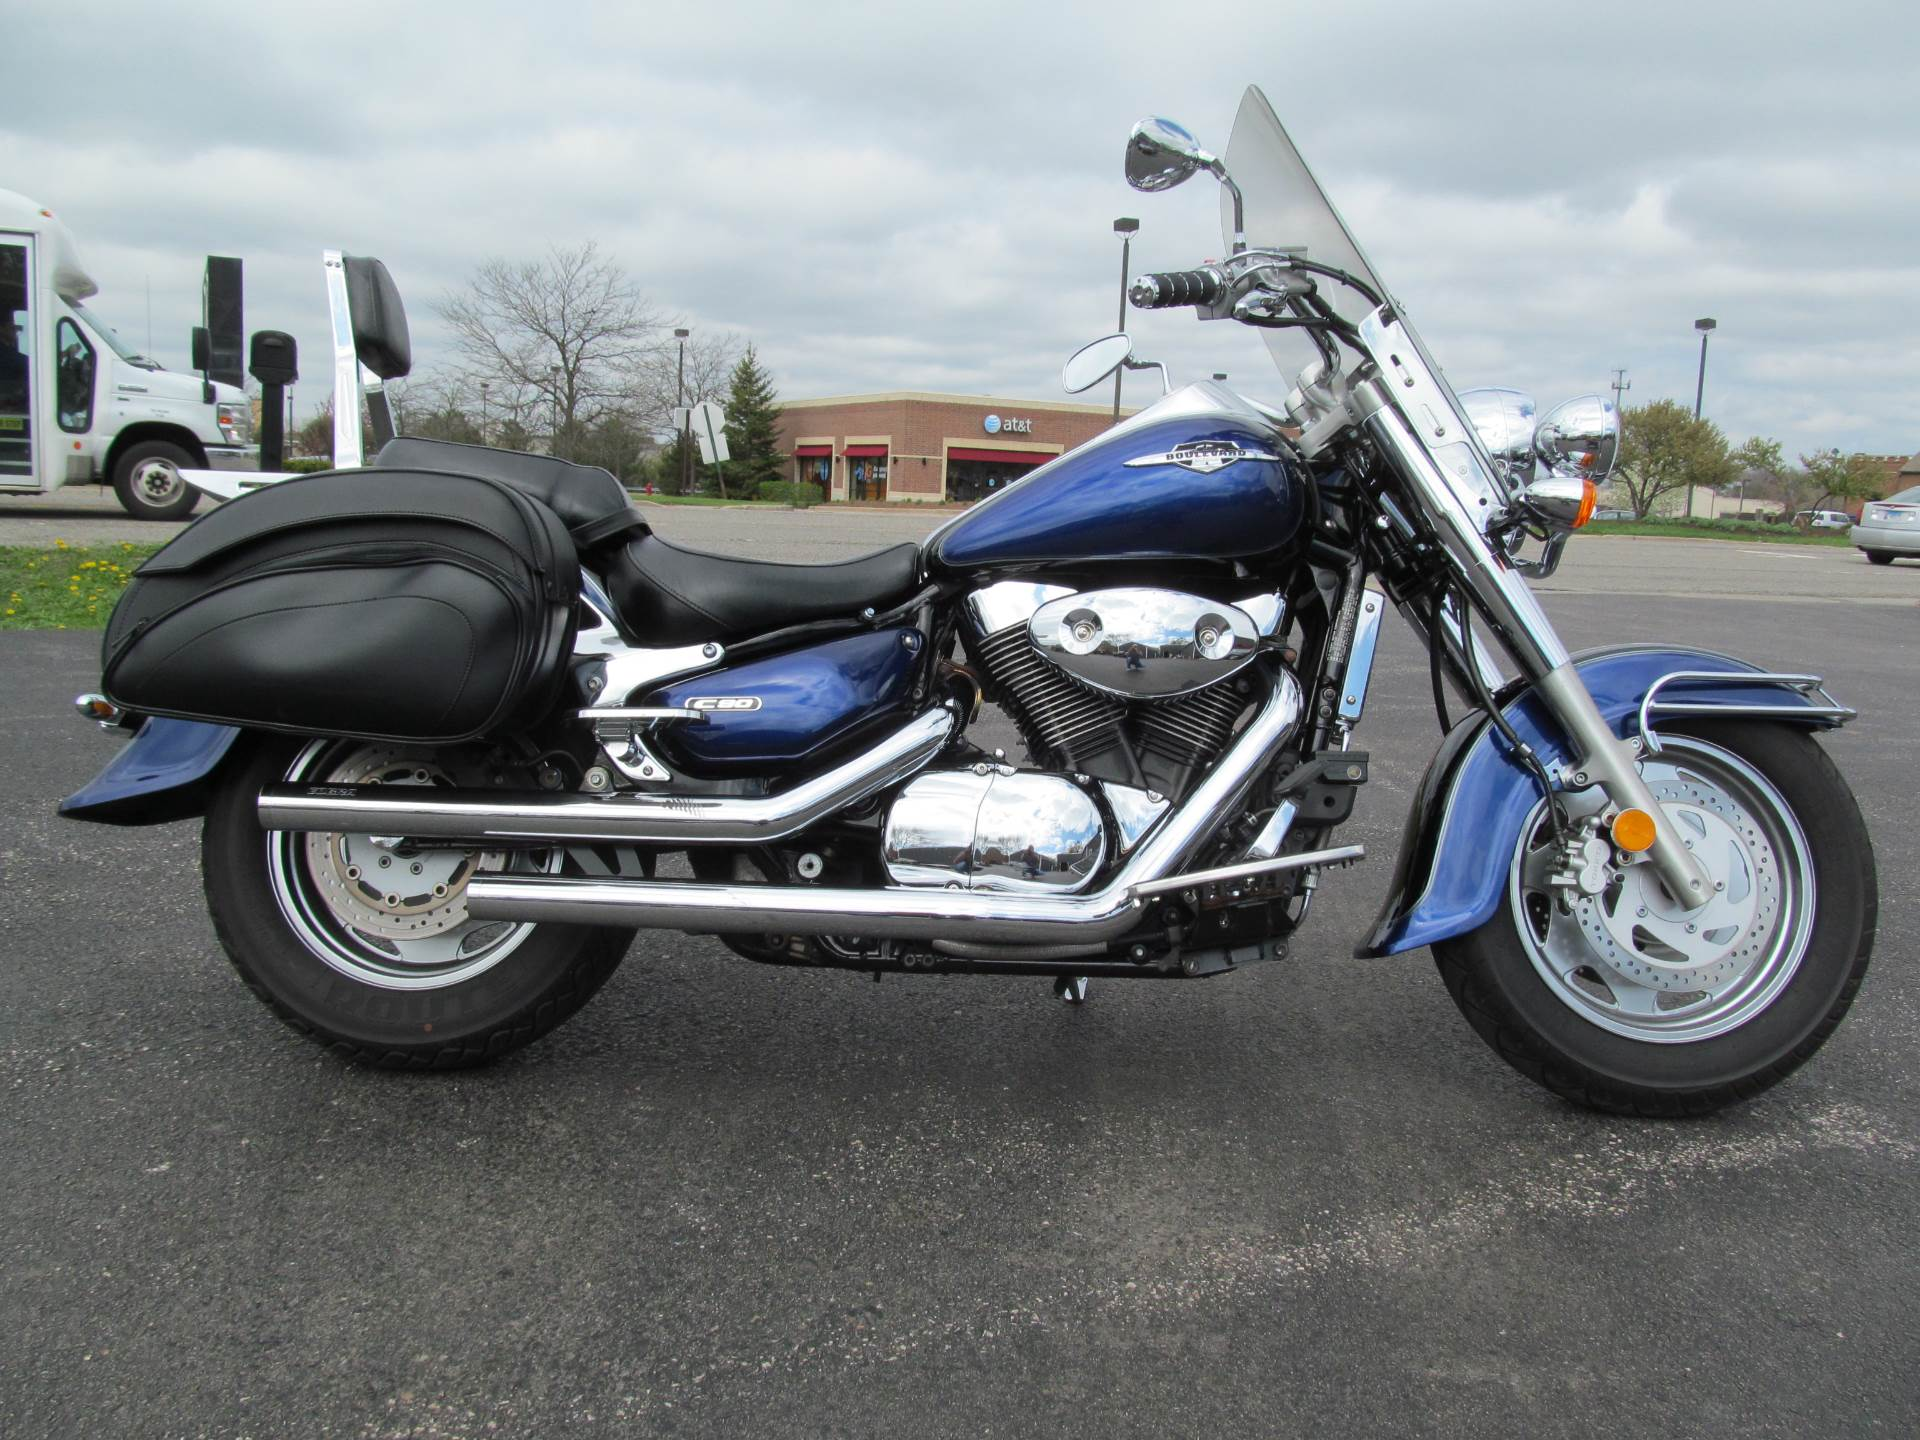 2005 suzuki boulevard c90 in crystal lake illinois